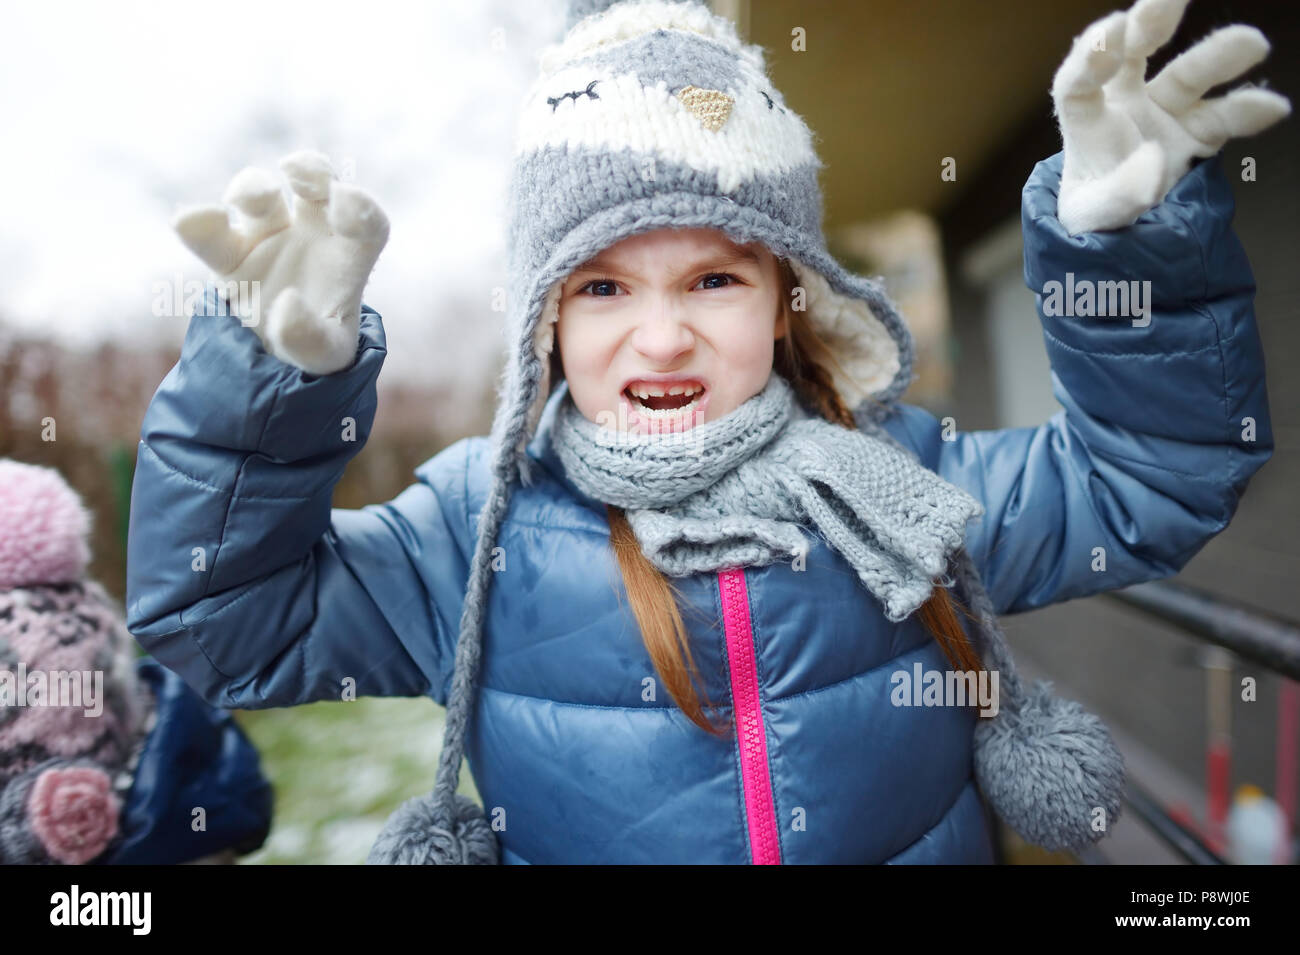 adorable little girl wearing winter hat making funny faces on